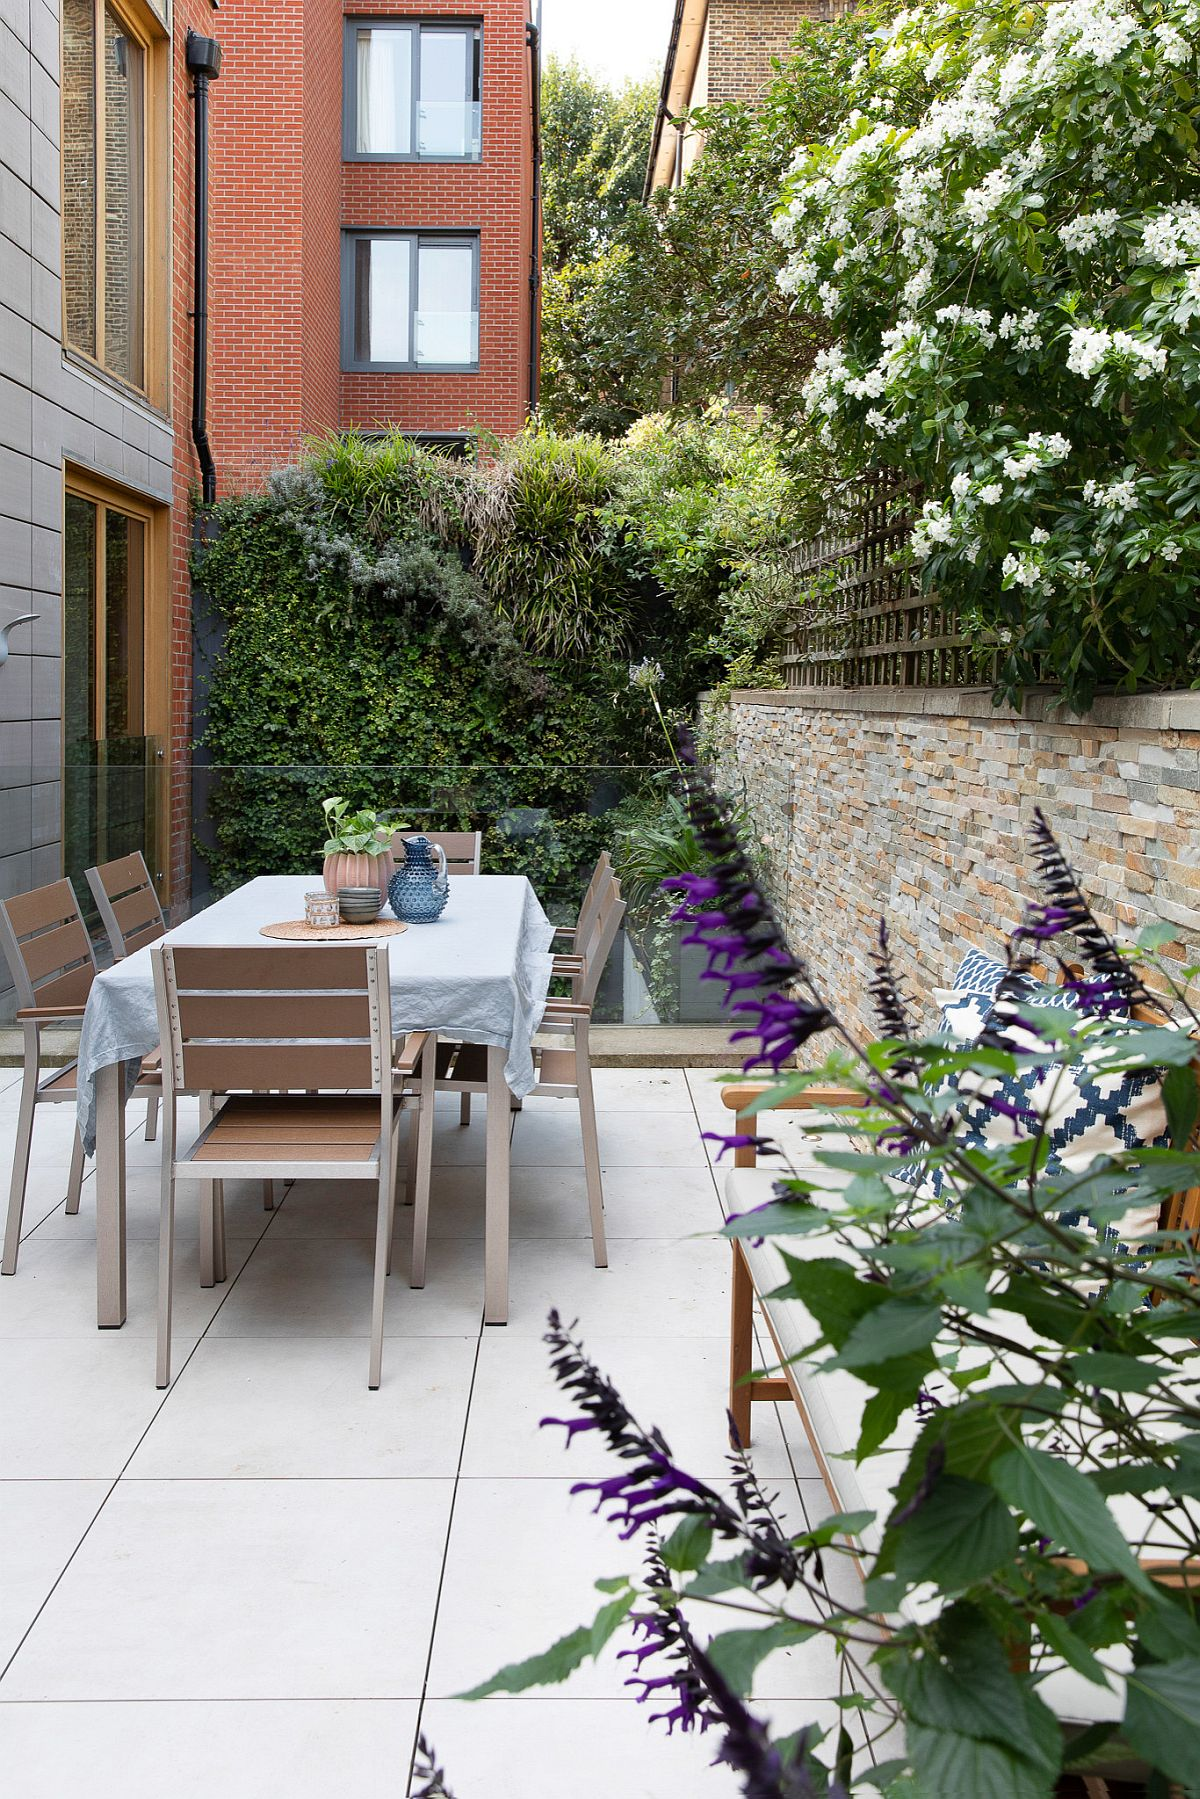 Small contemporary deck of London home with alfresco dining is surrounded by greenery